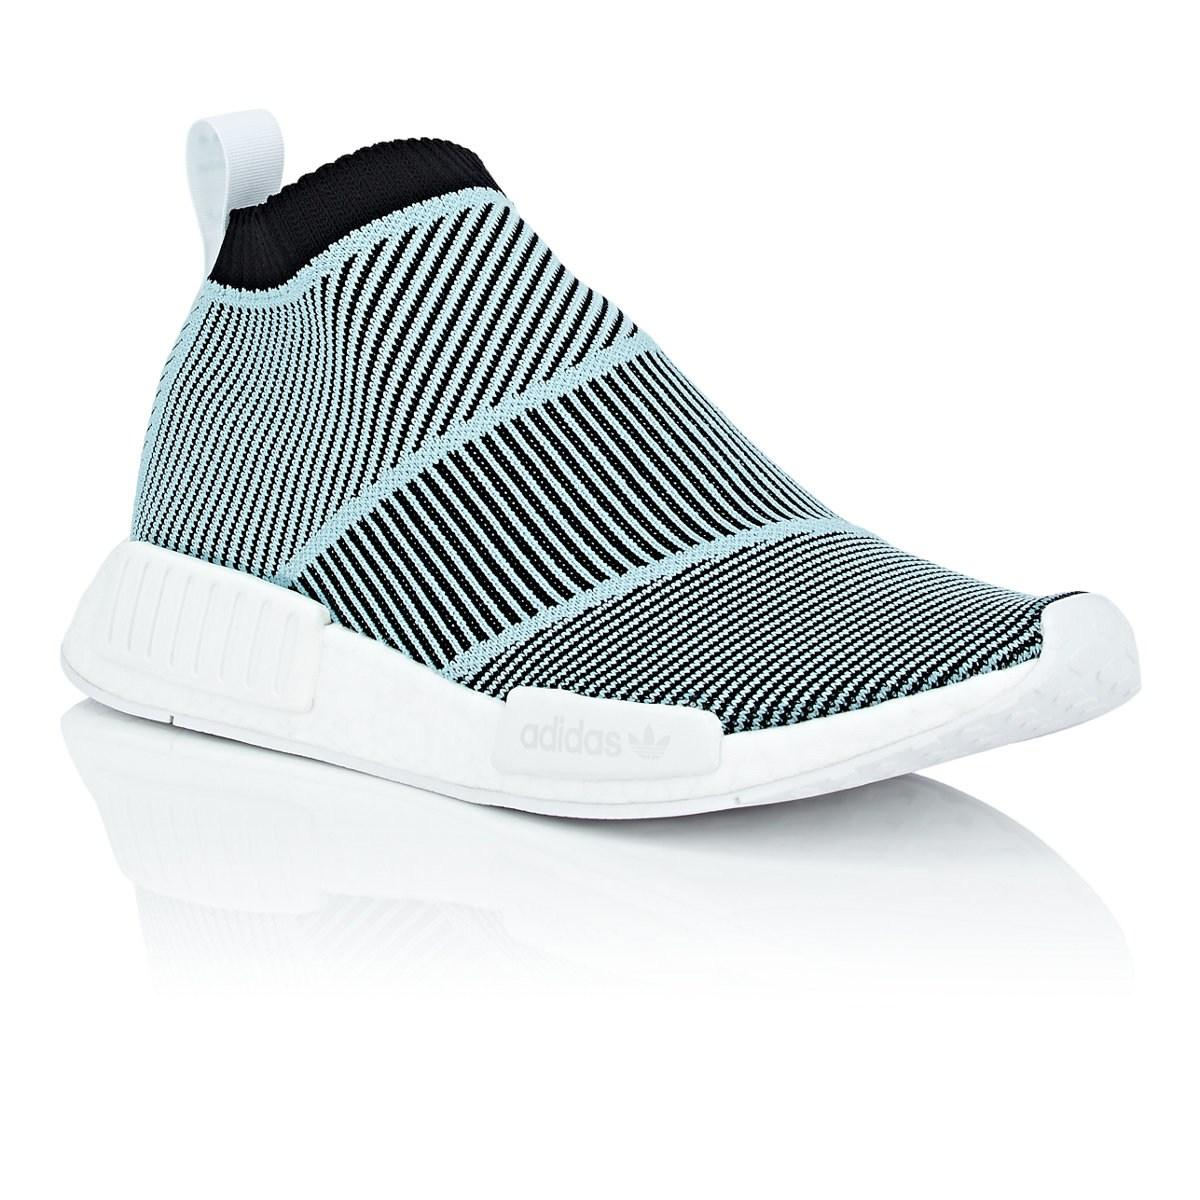 142481ce10556 ... Nmd Cs1 Parley Primeknit Sneakers for Men - Lyst. View fullscreen